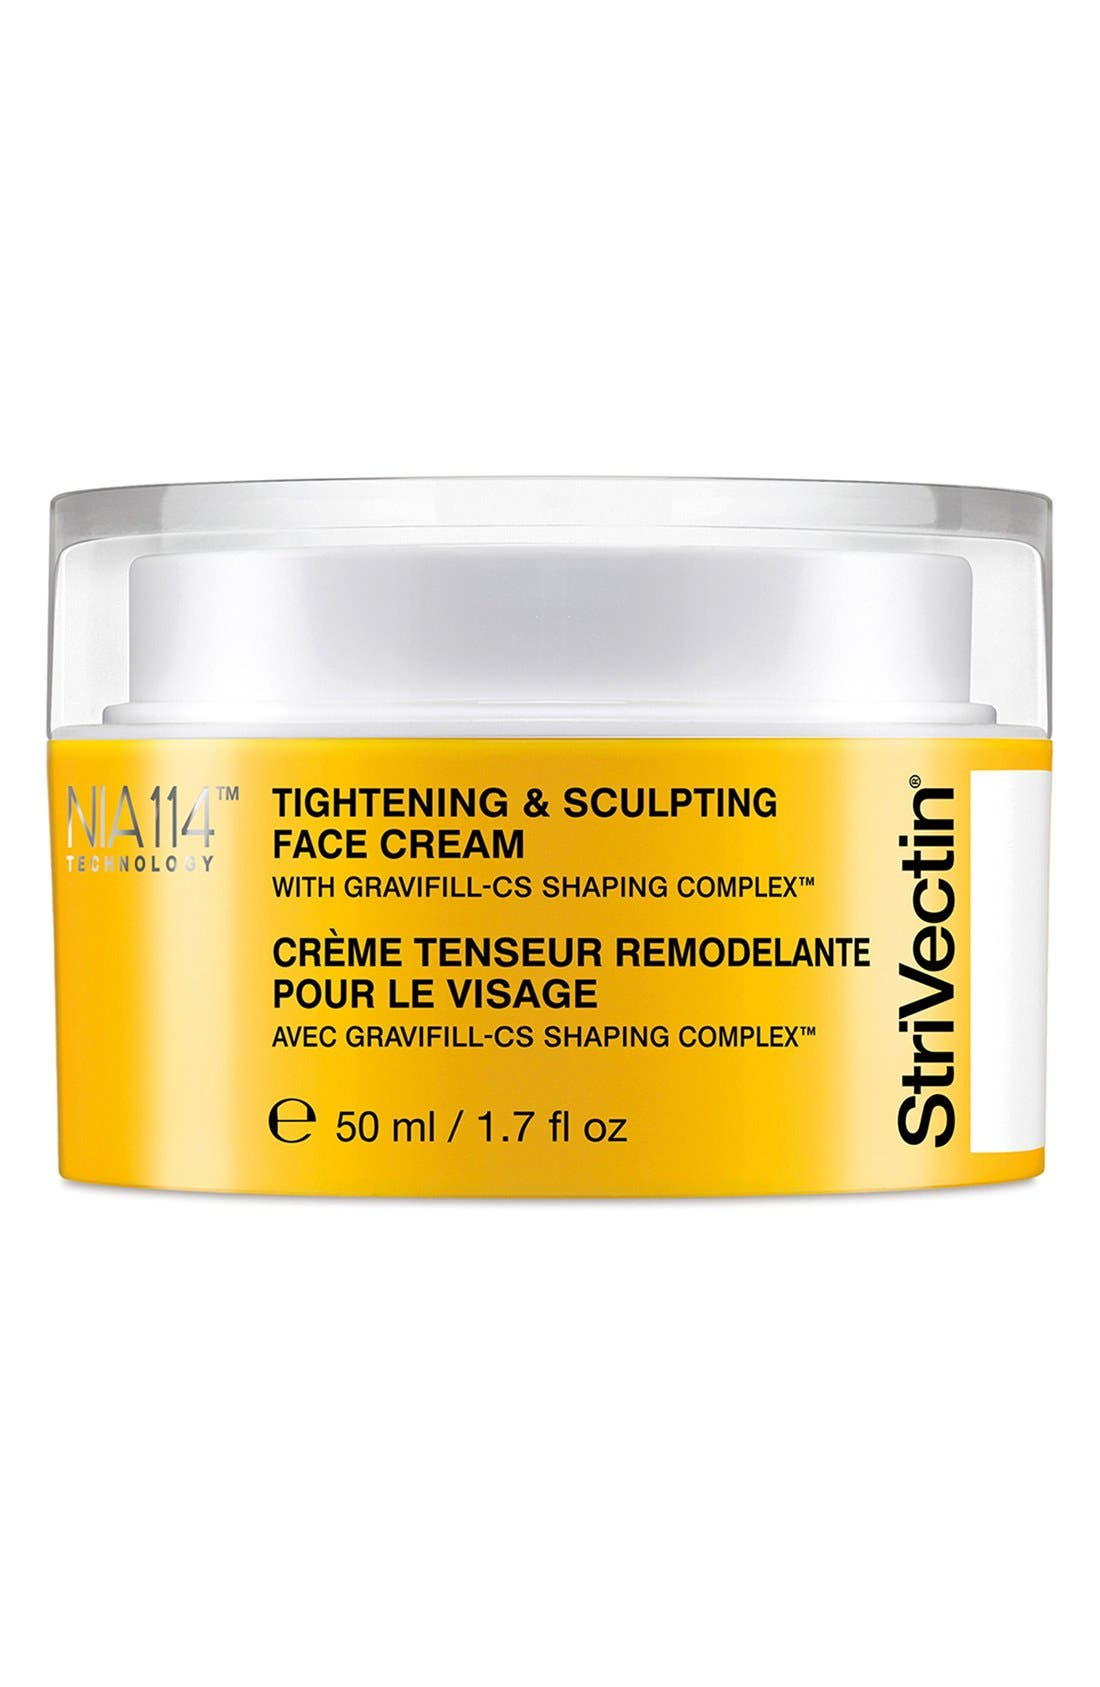 StriVectin-TL™ Tightening & Sculpting Face Cream